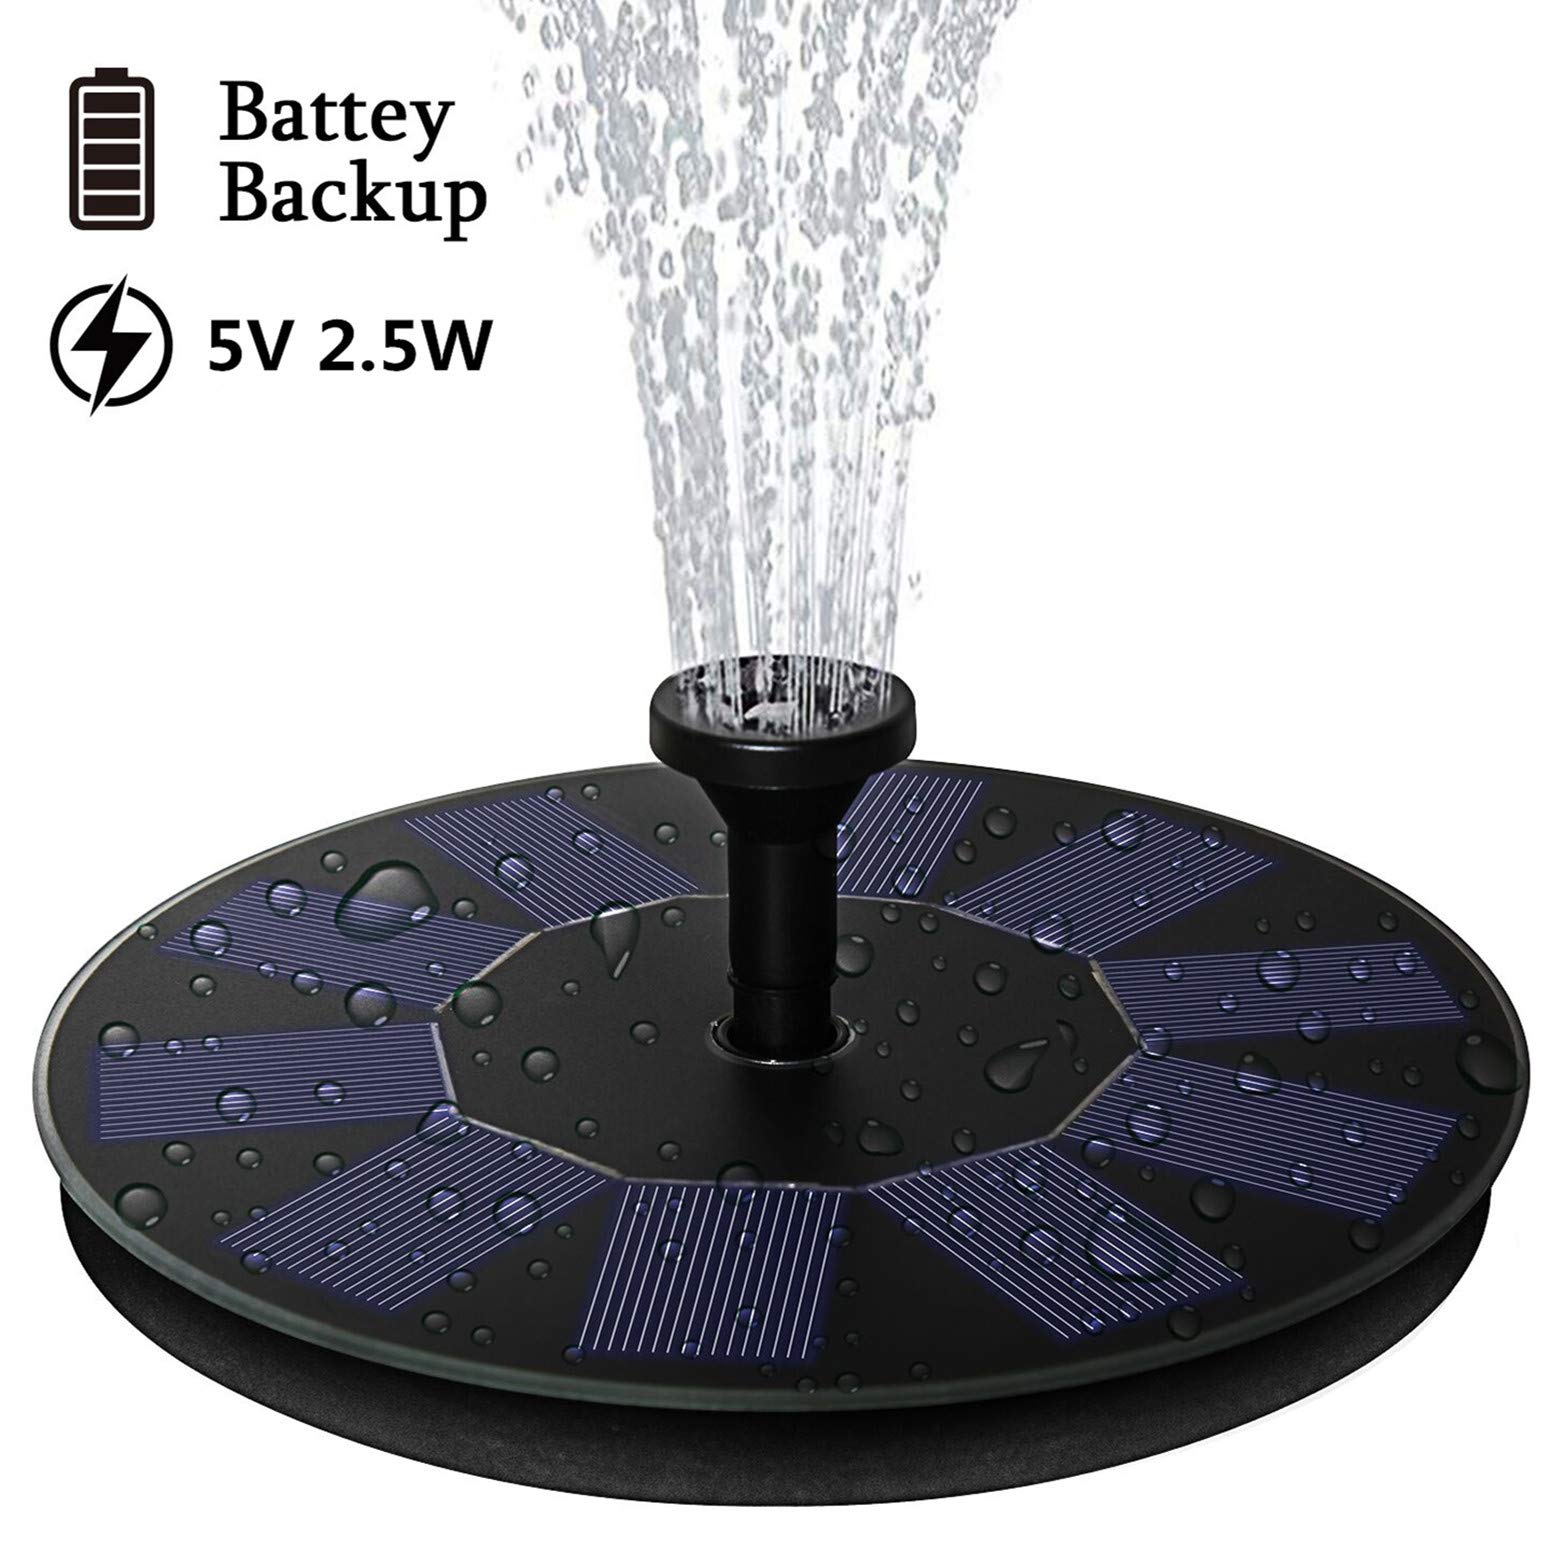 AMYER Solar Fountain, Solar Birdbath Fountain, Solar Powered Fountain Pump with Battery Backup 2.5W Solar Panel kit, Water Fountain Pump for Pool, Pond, Garden, Fish Tank, Aquarium by AMYER